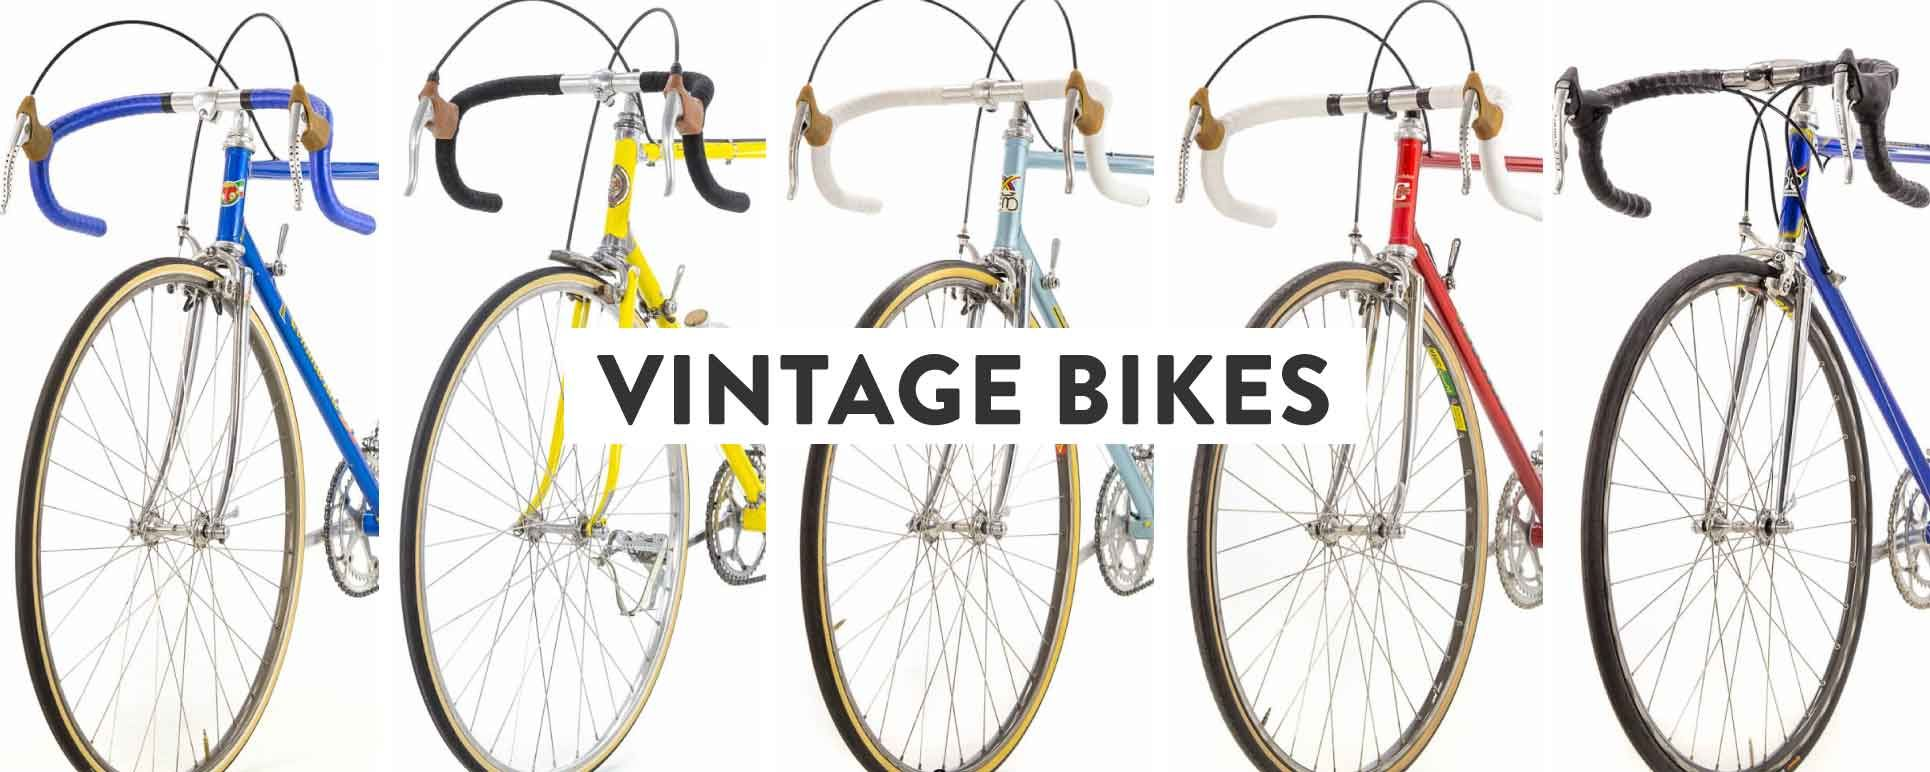 Steel Vintage Bikes Online Shop For Classic Vintage Bicycles